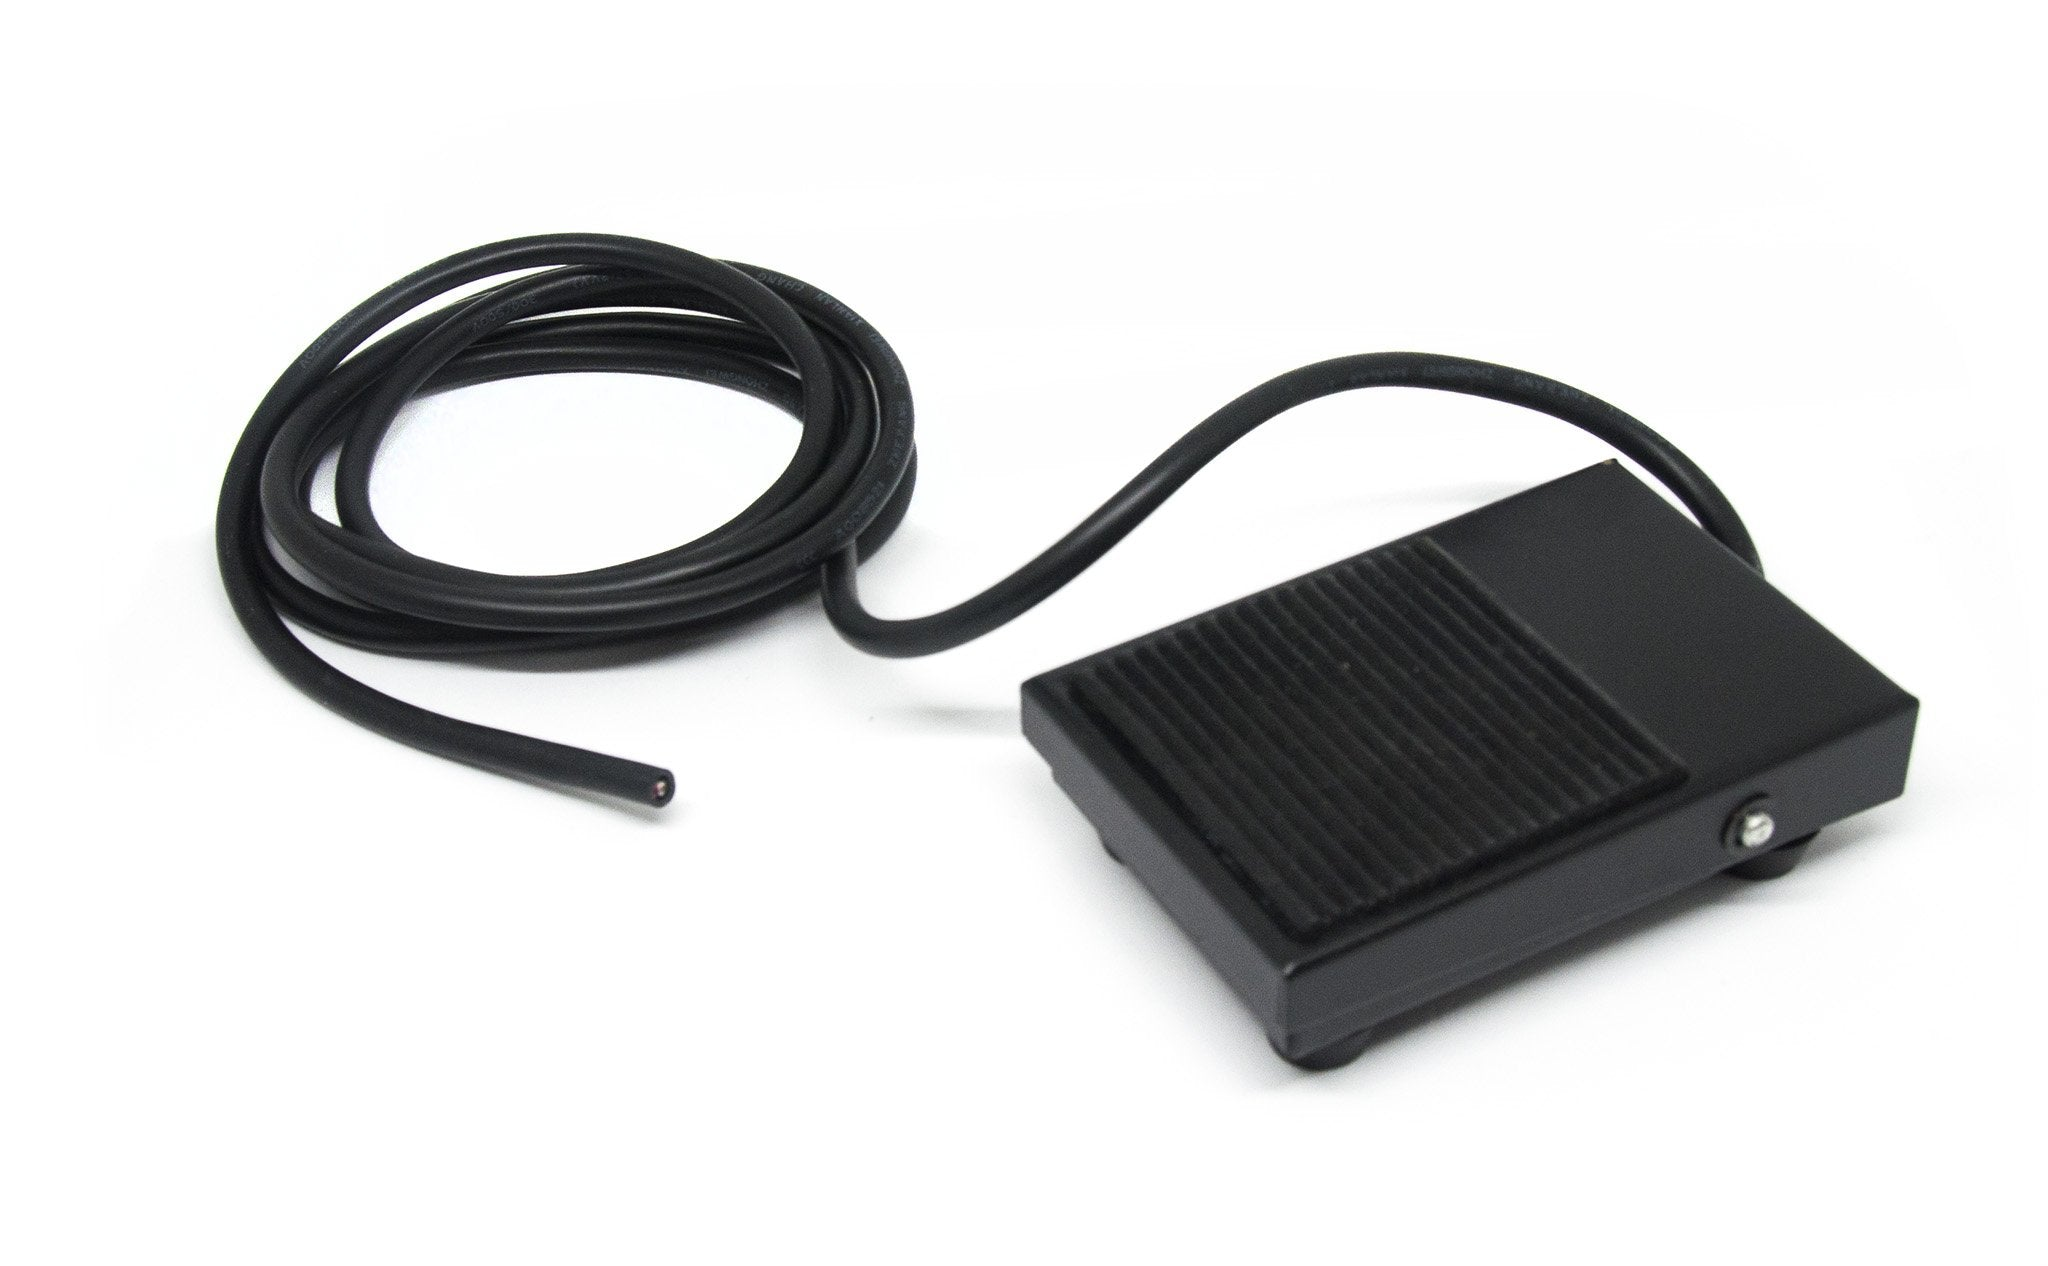 HEAVY DUTY FOOT PEDAL DIS-216